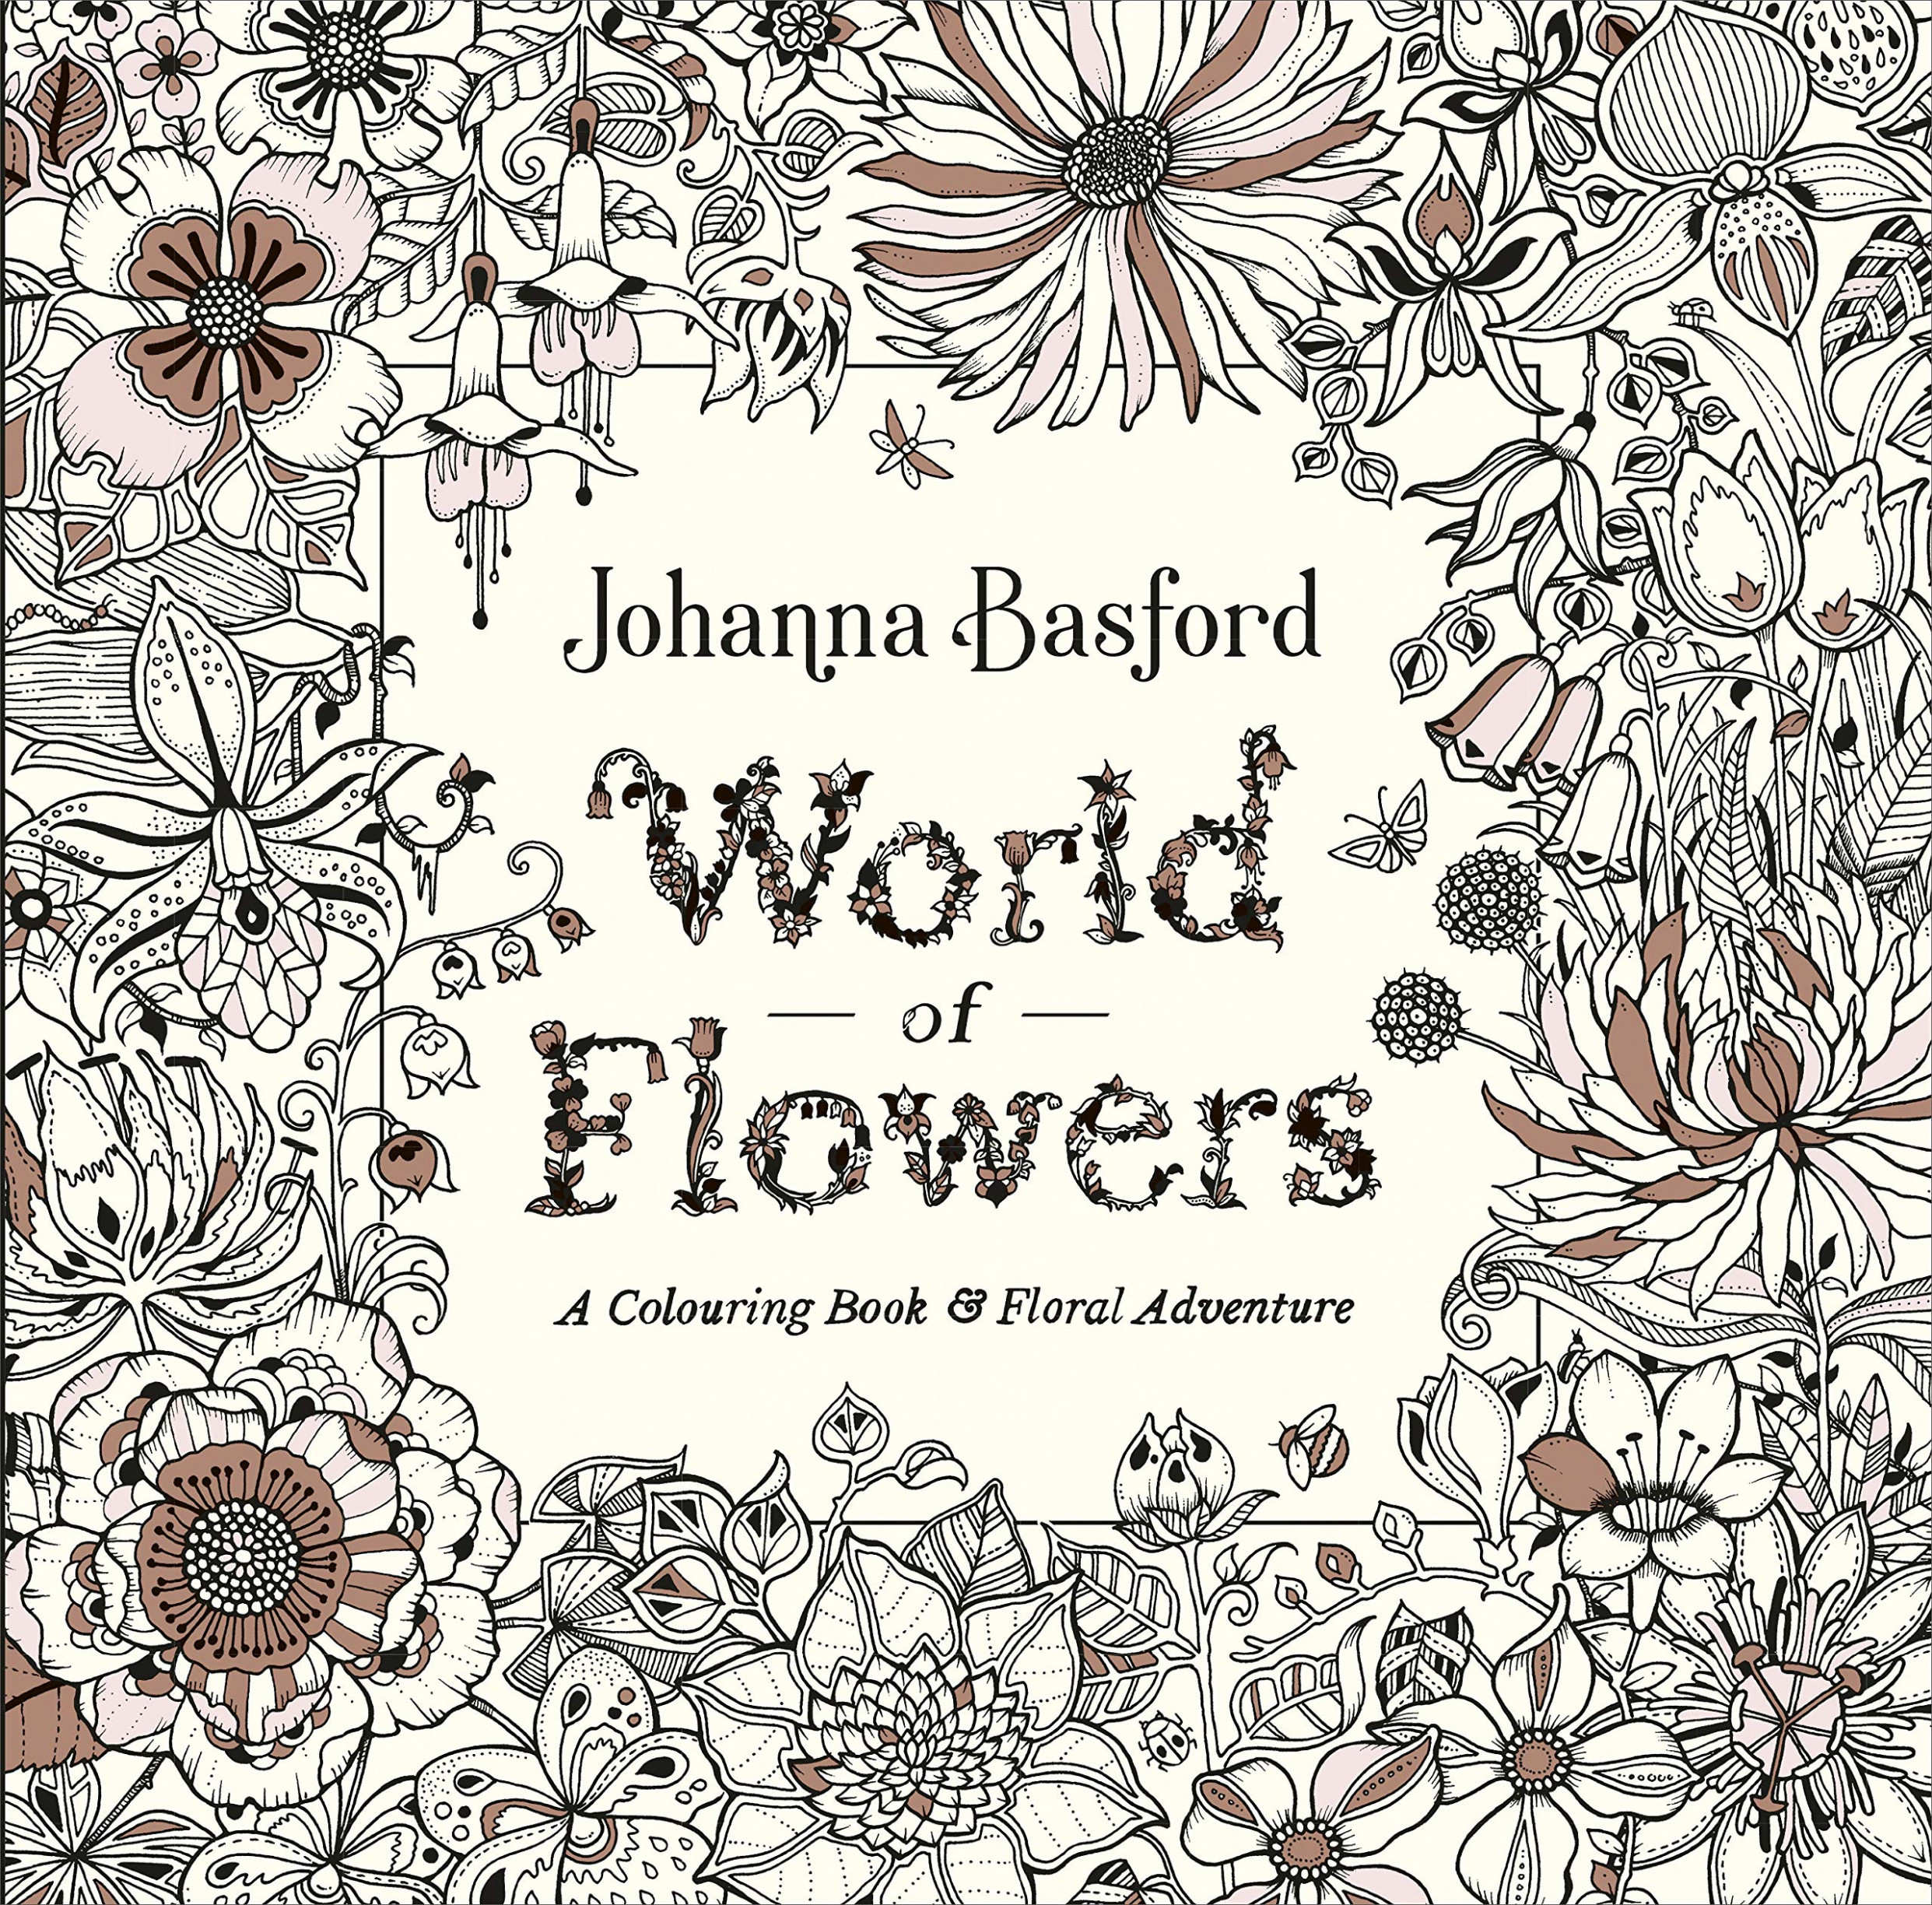 World of Flowers: A Colouring Book and Floral Adventure: Amazon.de ..